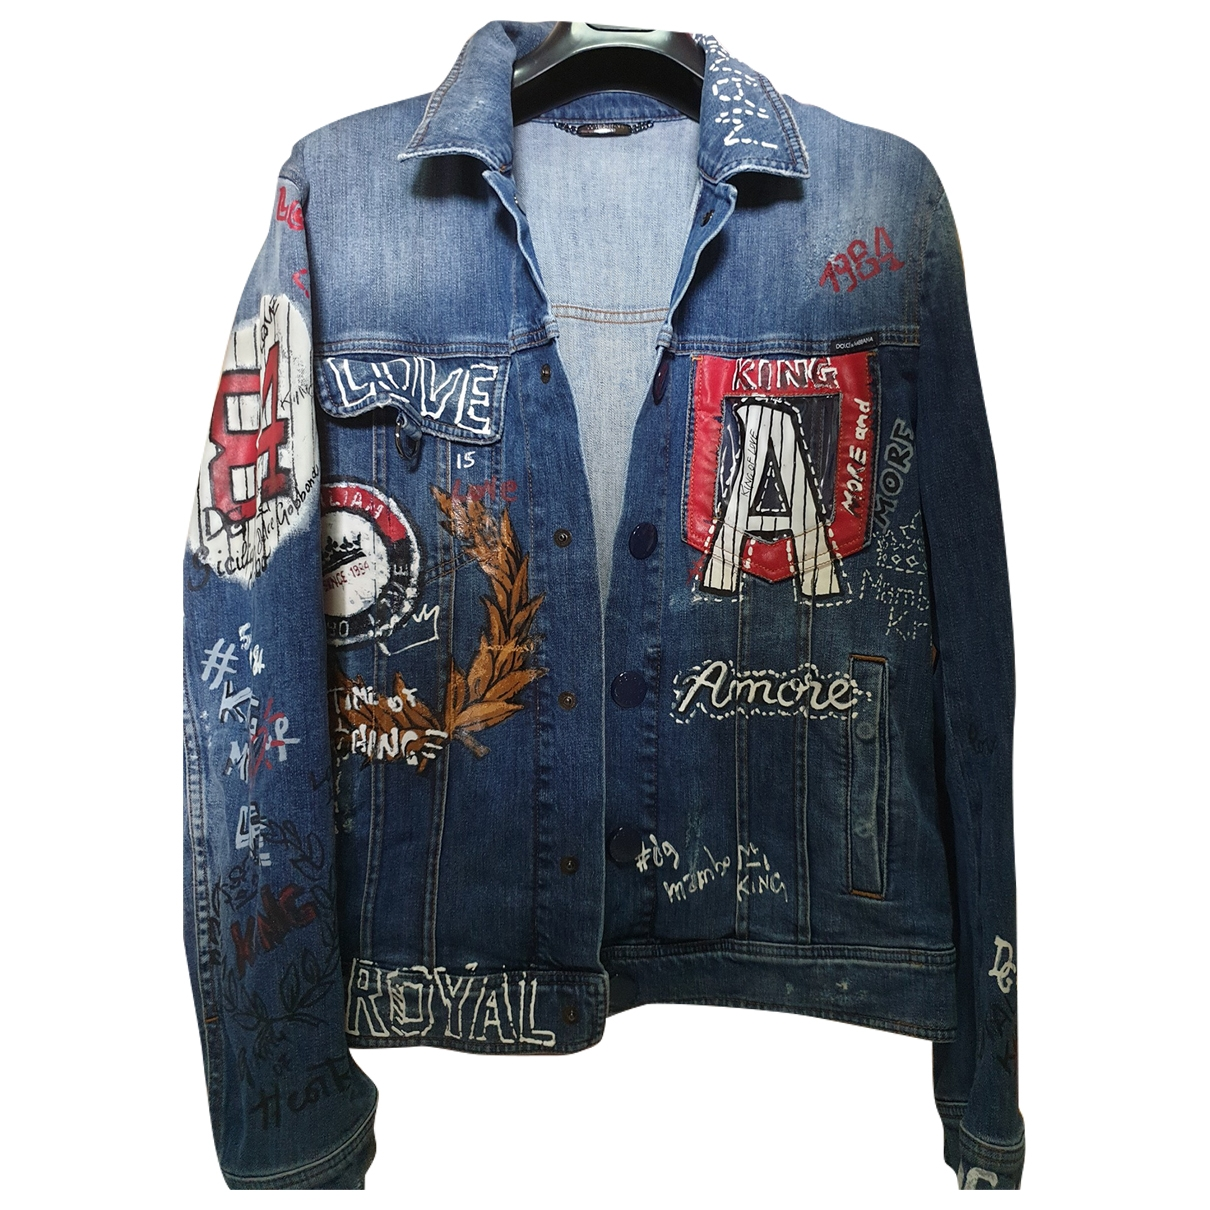 Dolce & Gabbana \N Blue Denim - Jeans jacket  for Men M International